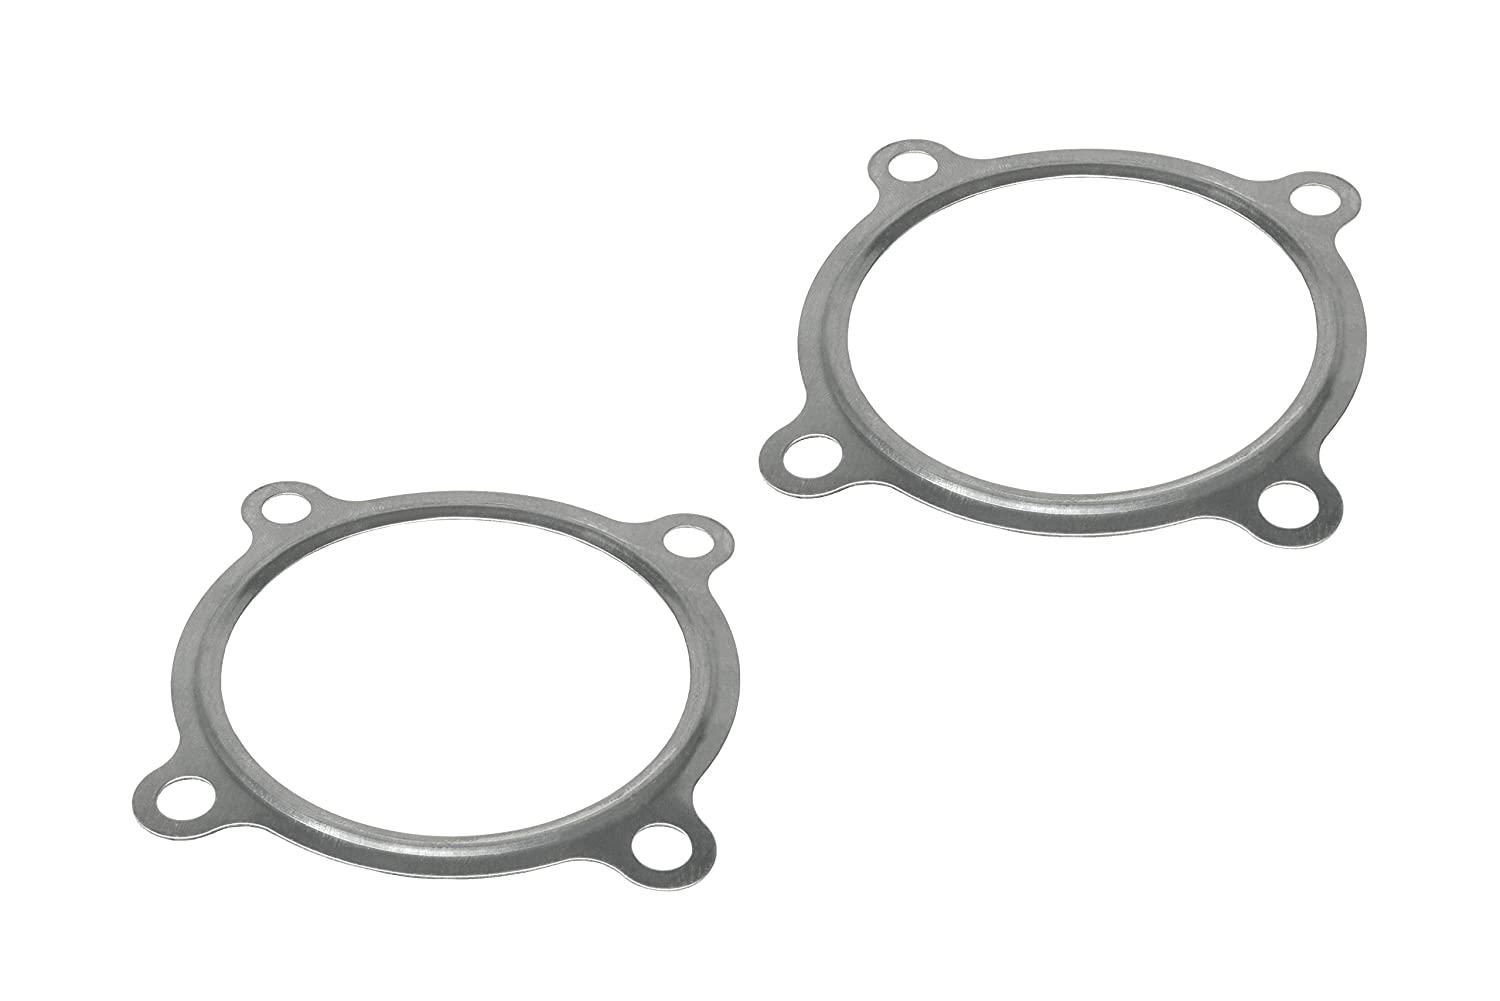 PitVisit PV Raceworks T3 Divided T3//T4 Turbo Turbine Inlet Twin Scroll 4 Bolt Gasket Stainless Steel Compatible with Garrett Precision PTE Turbonetics Turbocharger